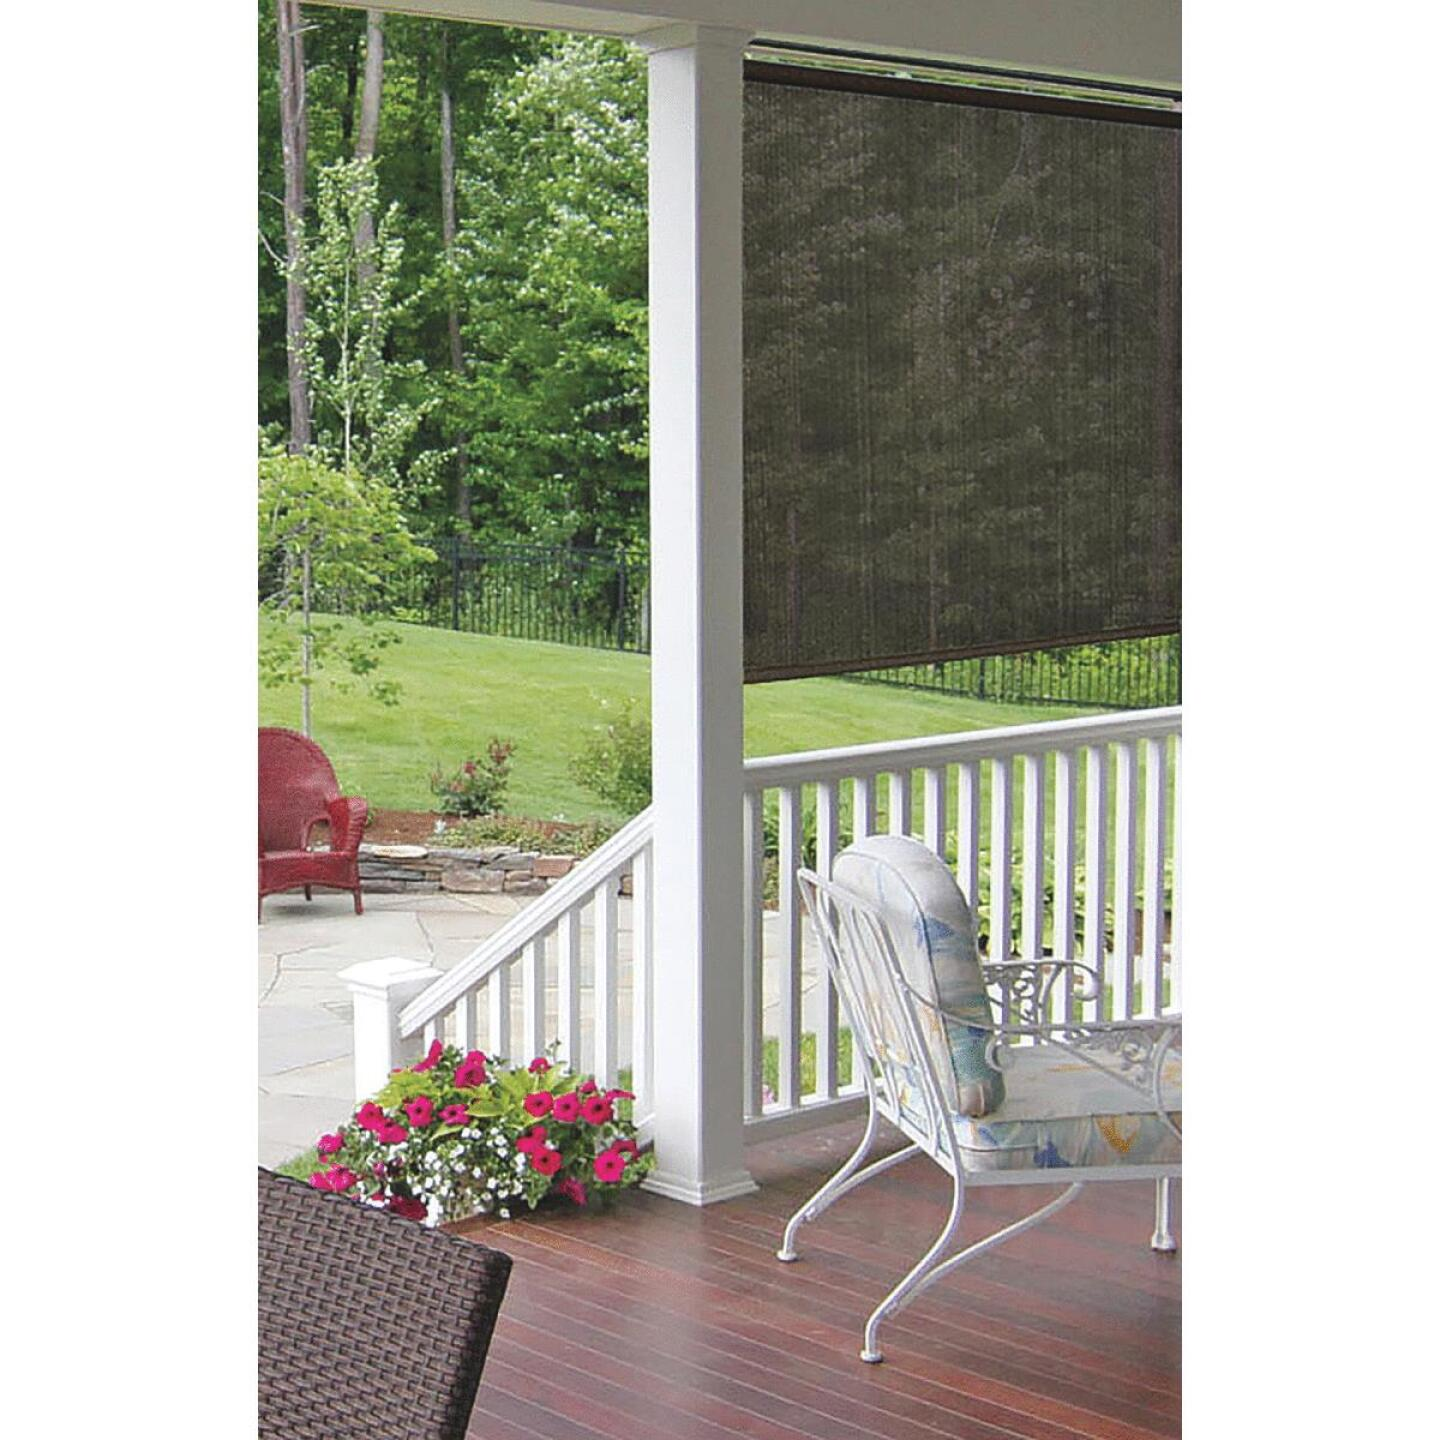 Home Impressions 36 In. x 72 In. Brown Fabric Indoor/Outdoor Cordless Roller Shade Image 2